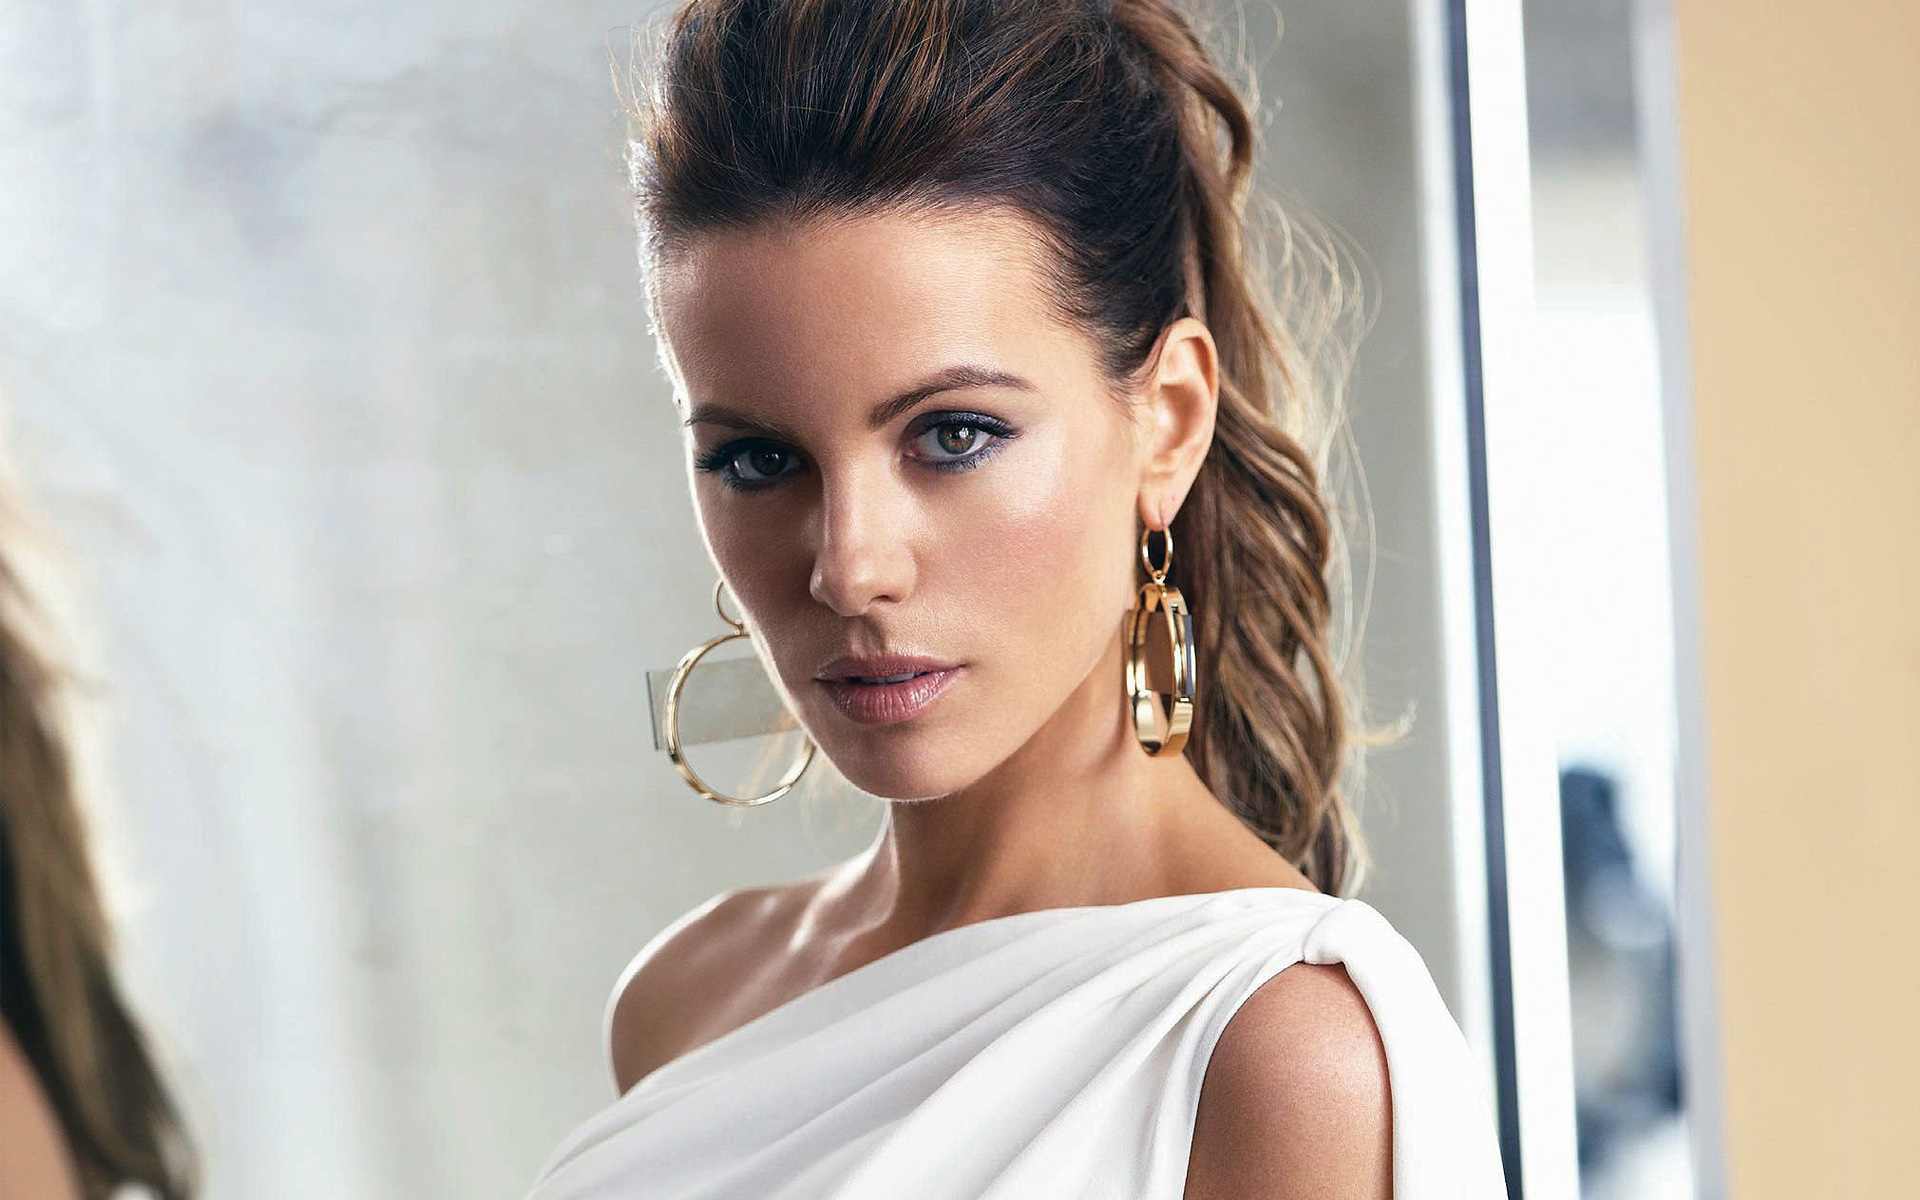 Kate Beckinsale 2 1115.6 Kb